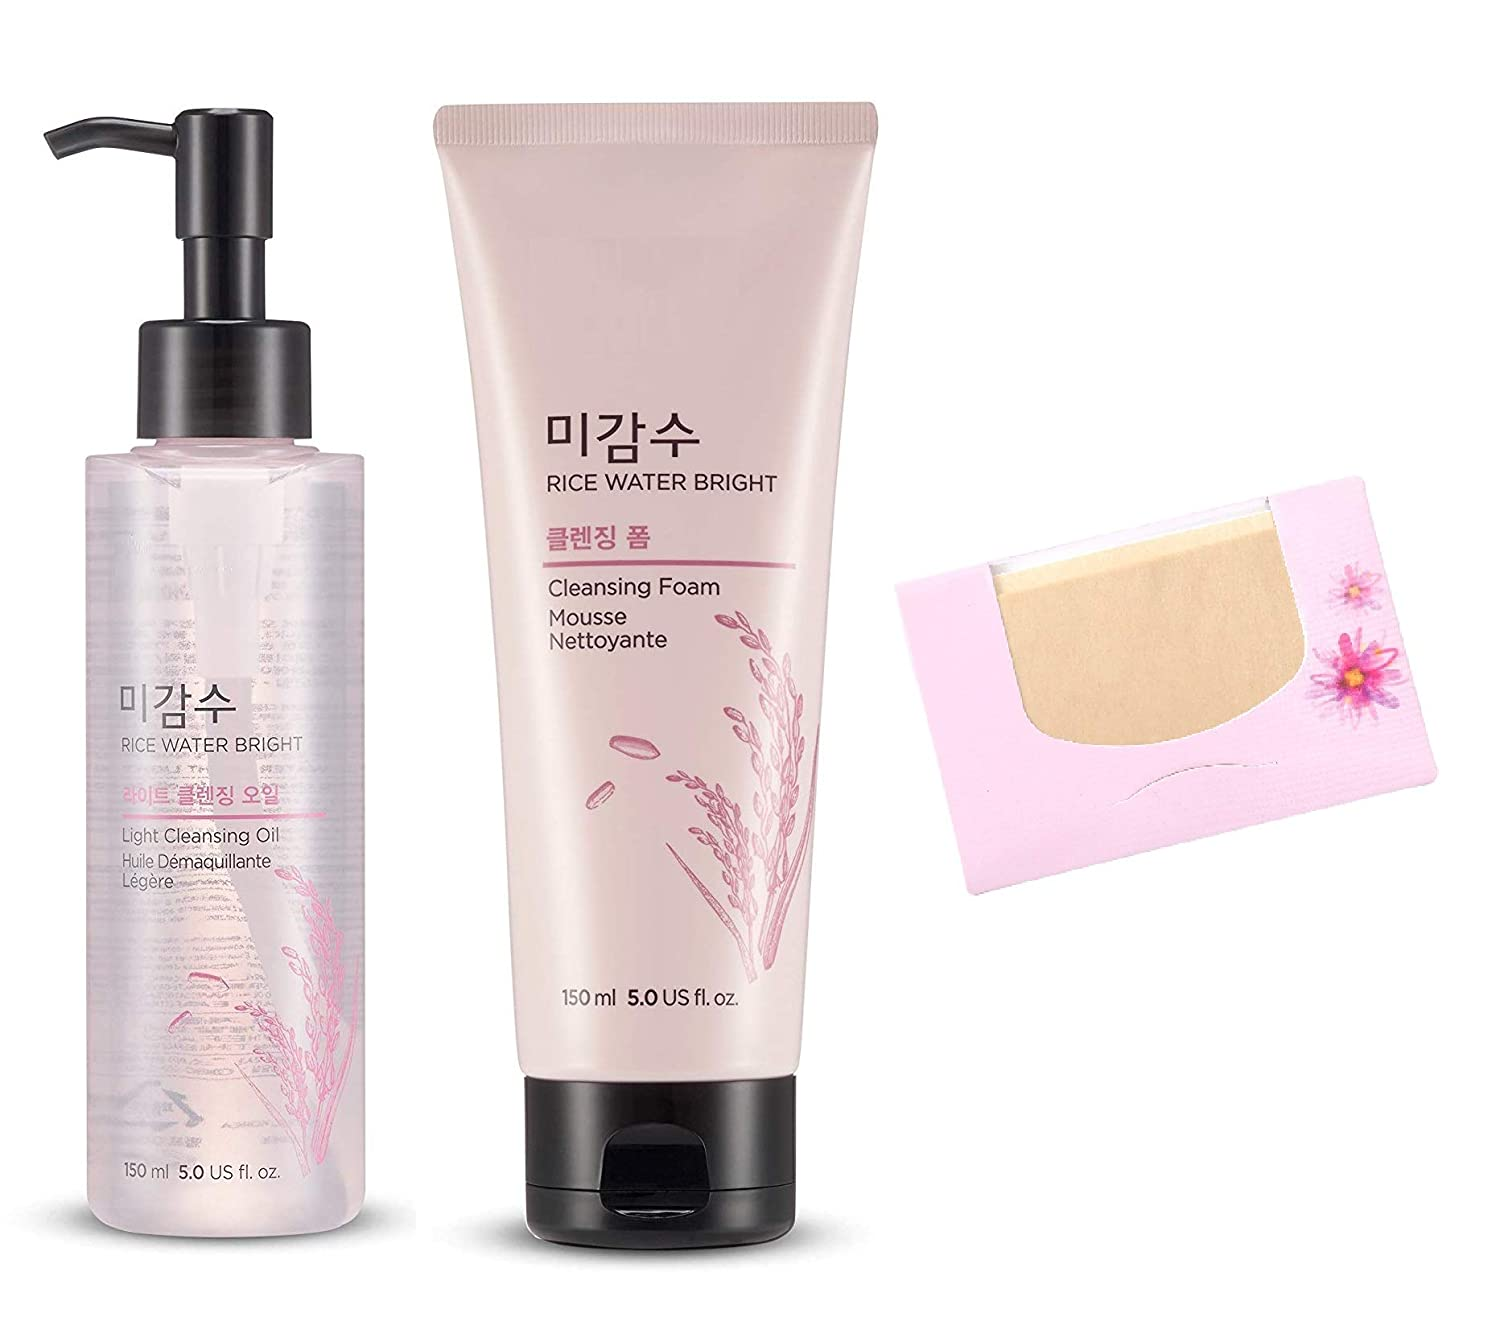 SoltreeBundle Korean Skincare Rice Water Bright Set(Cleansing Oil & Cleansing Foam) with SoltreeBundle Natural Hemp Paper 50pcs